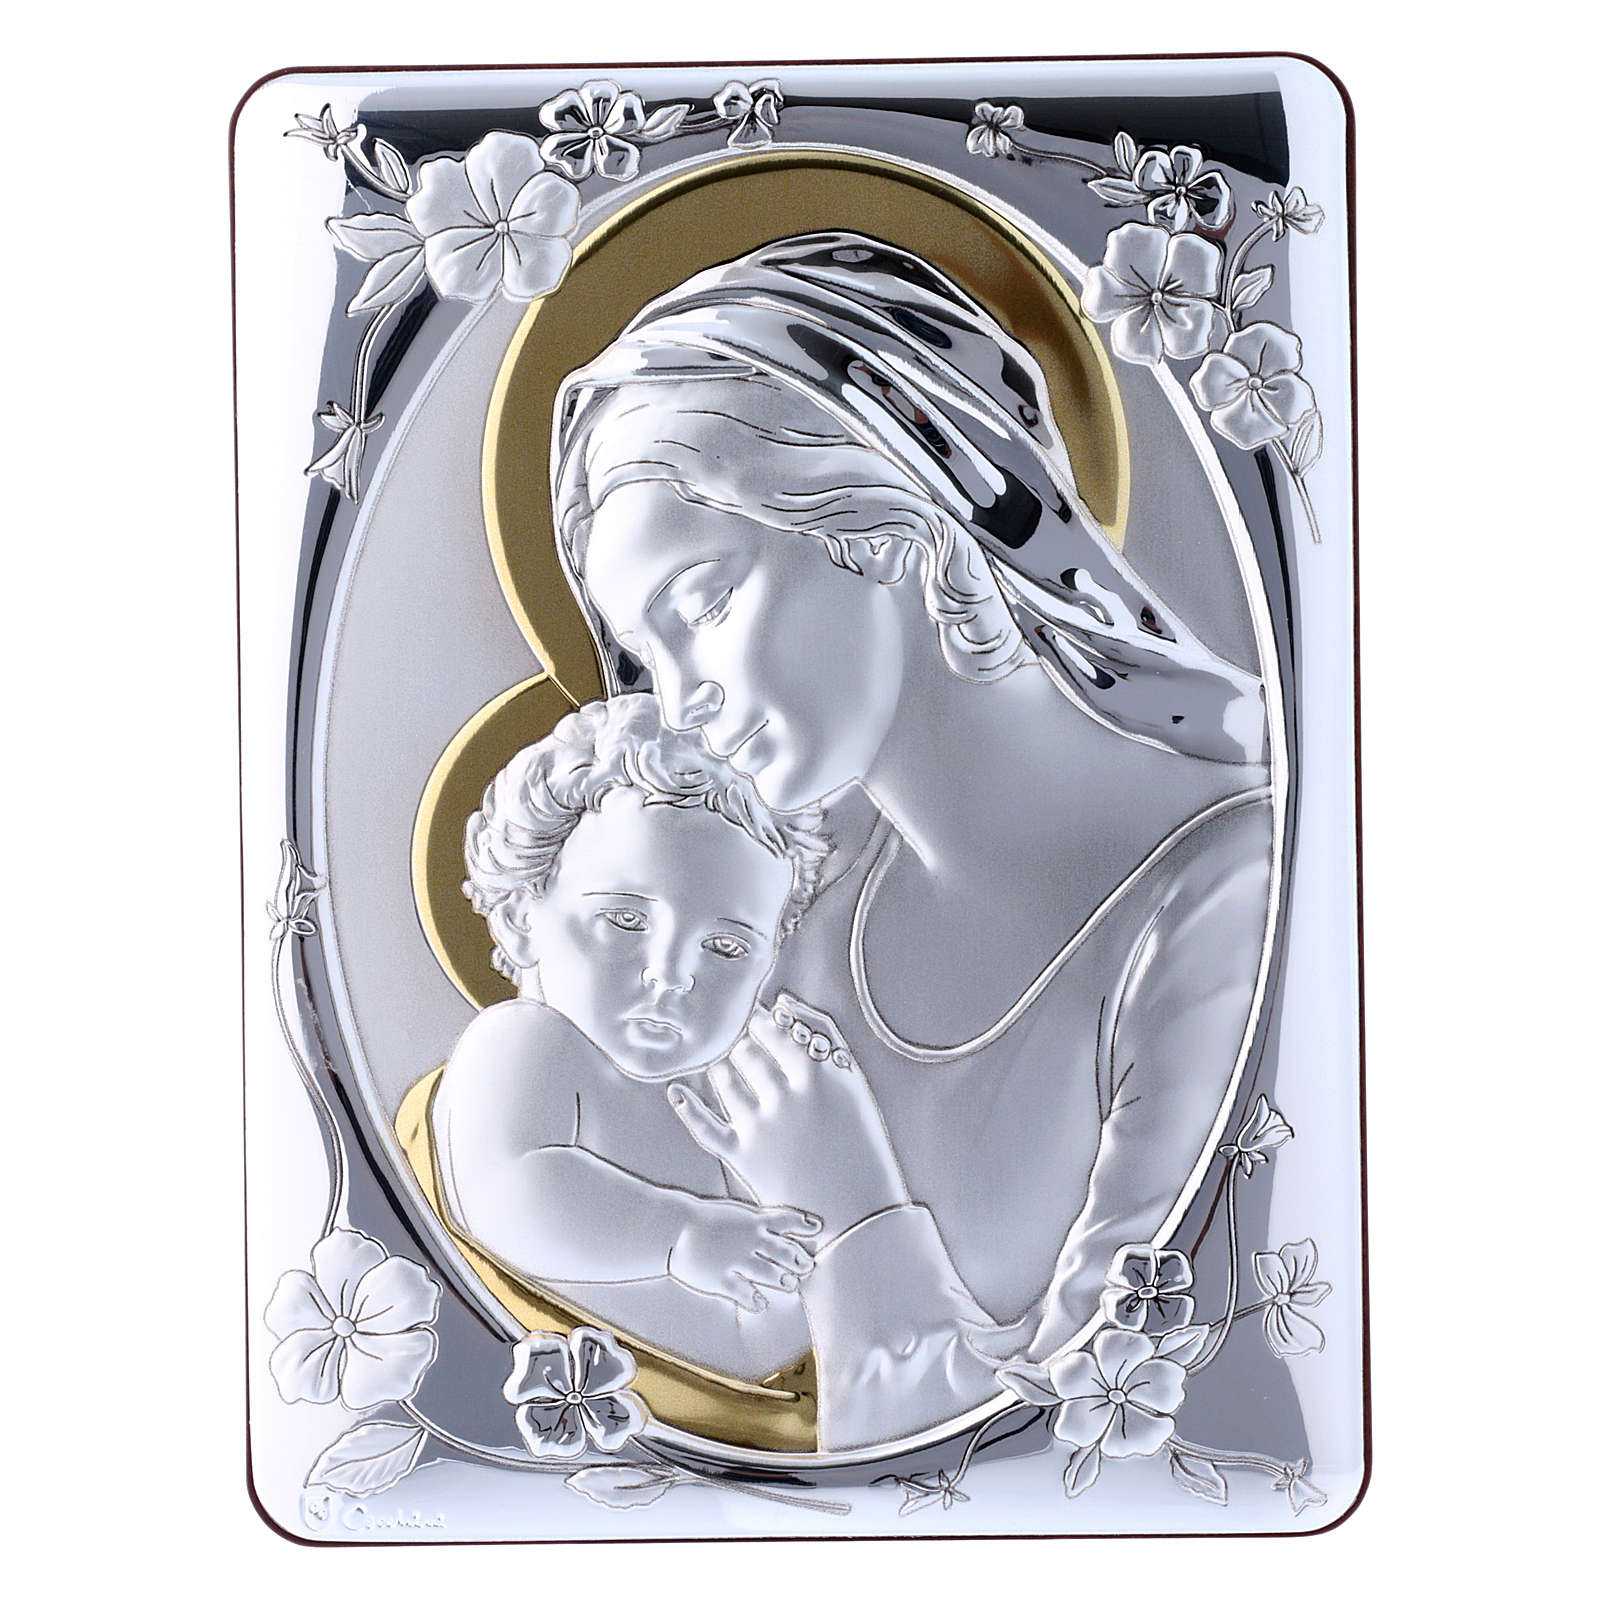 Our Lady with Baby Jesus painting finished in gold, made of laminboard with refined wooden back 21,6X16,3 cm 4